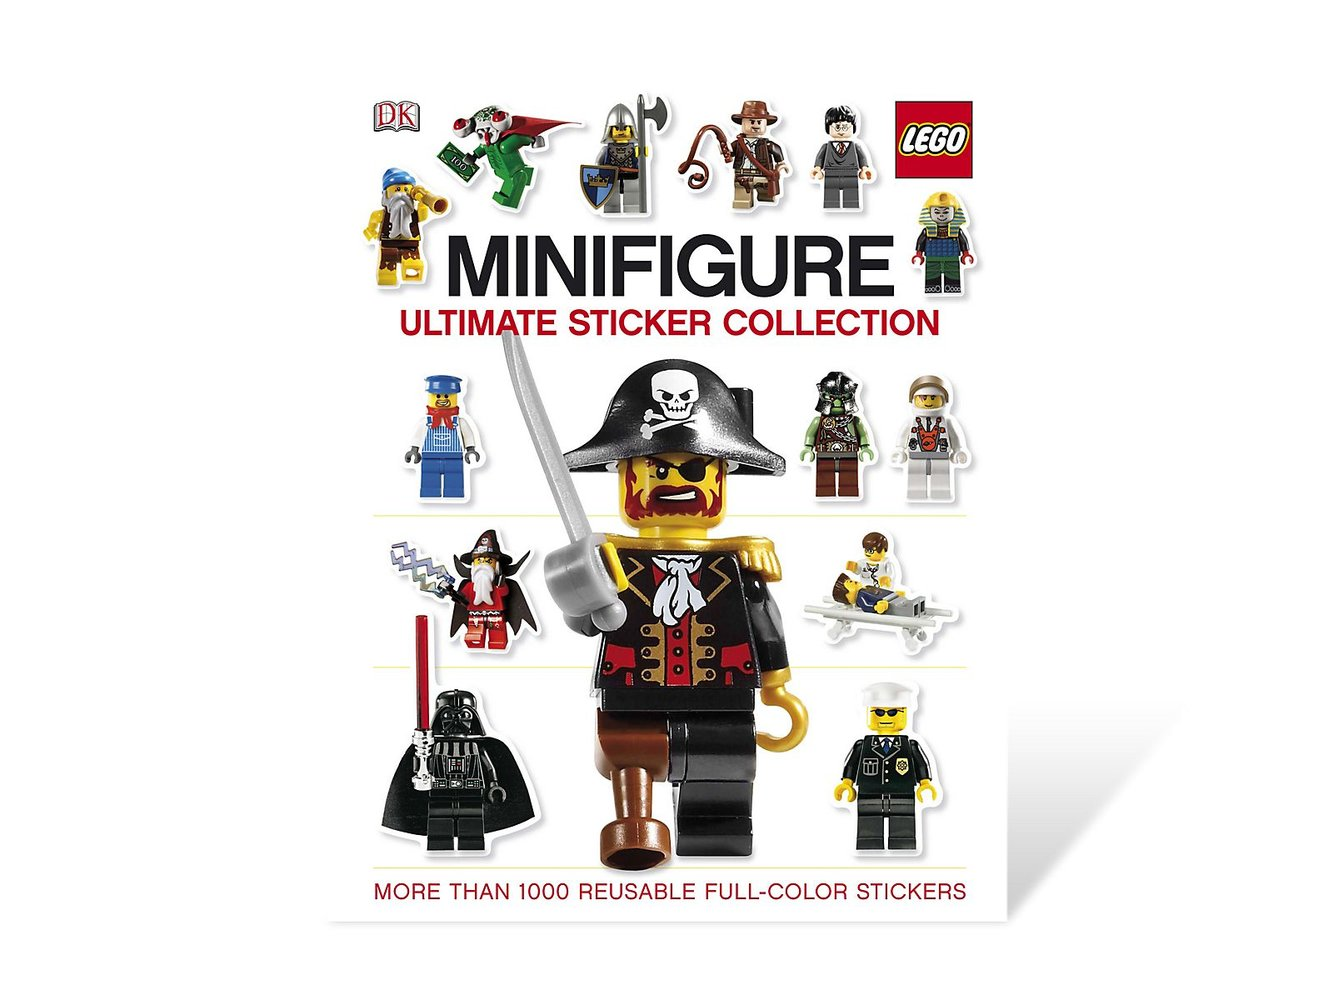 Minifigure Ultimate Sticker Collection